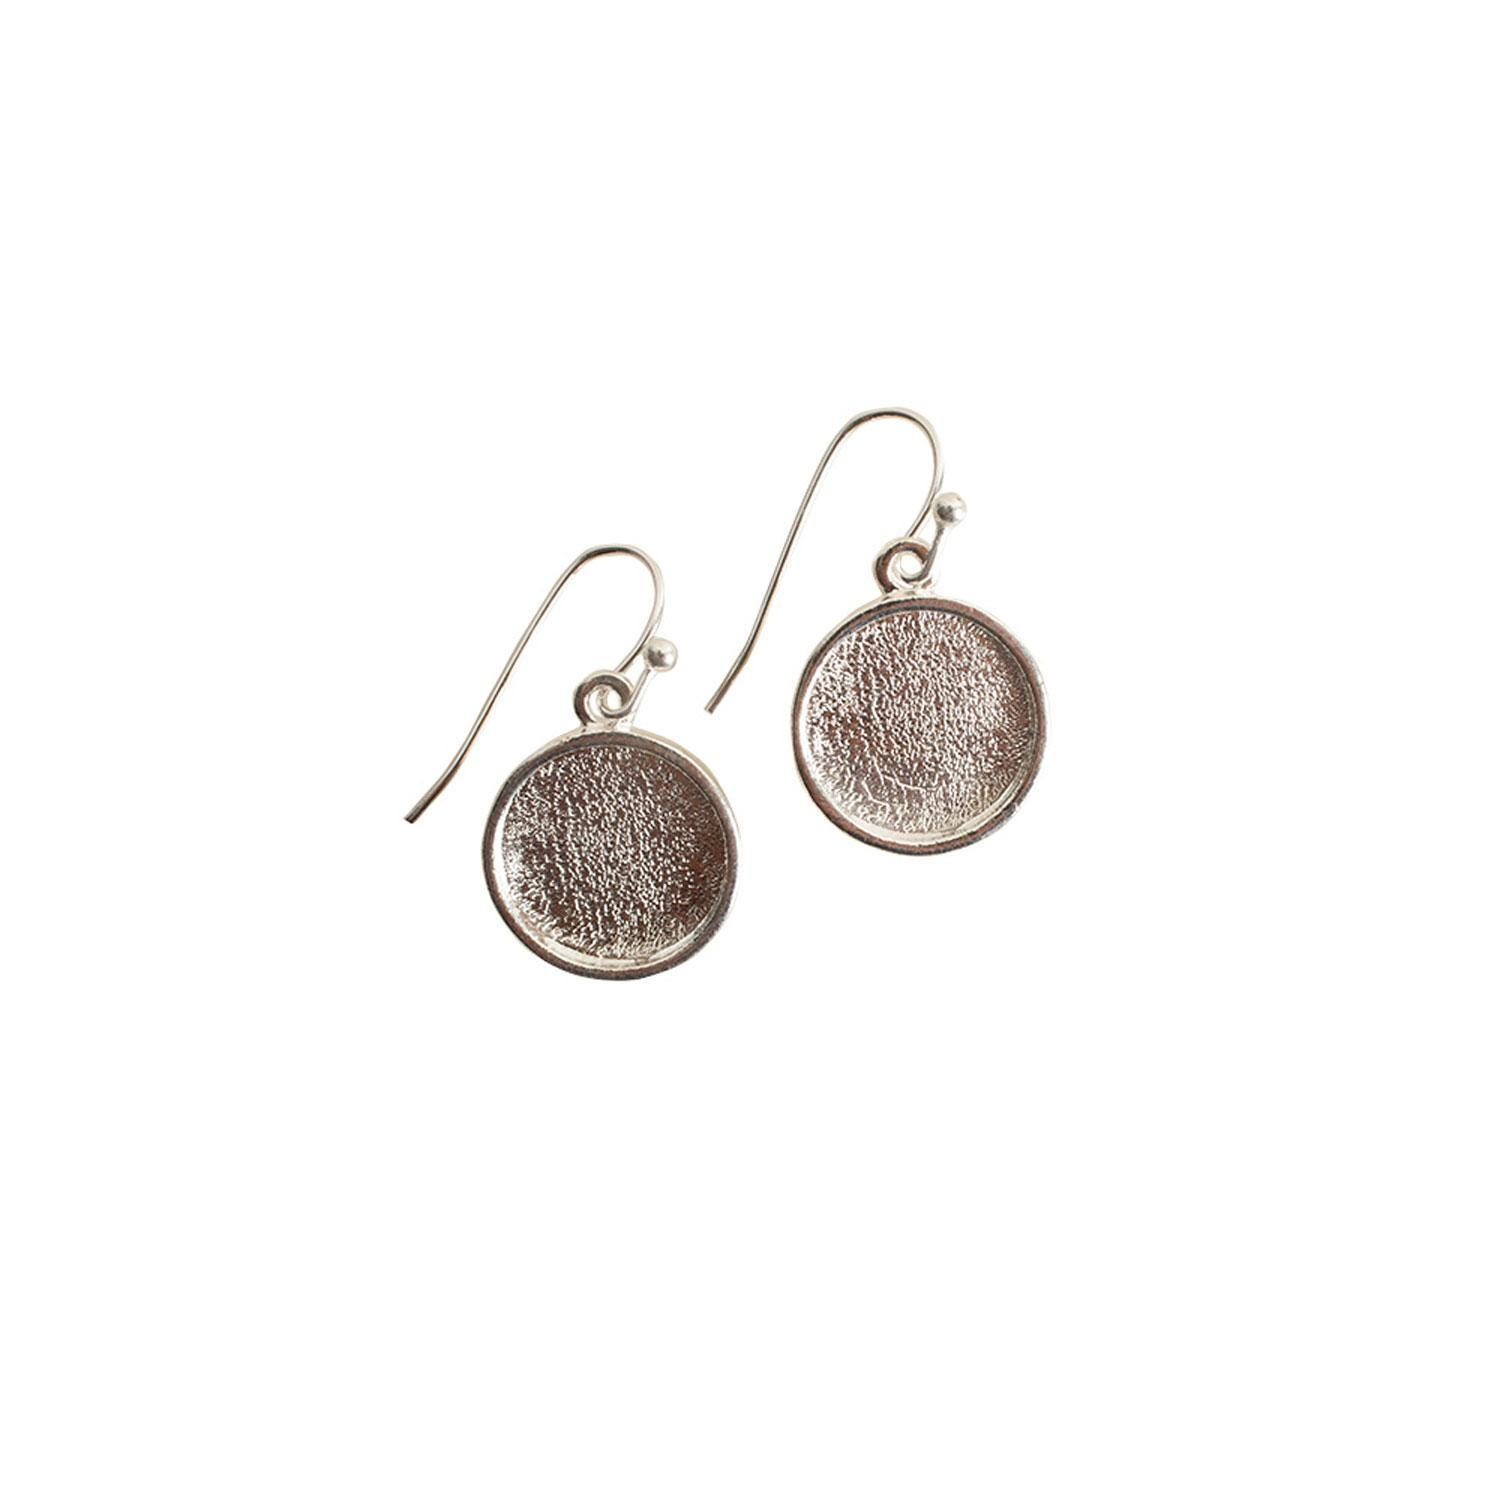 Silver Plated Round Cabochon Earrings - 4 pair